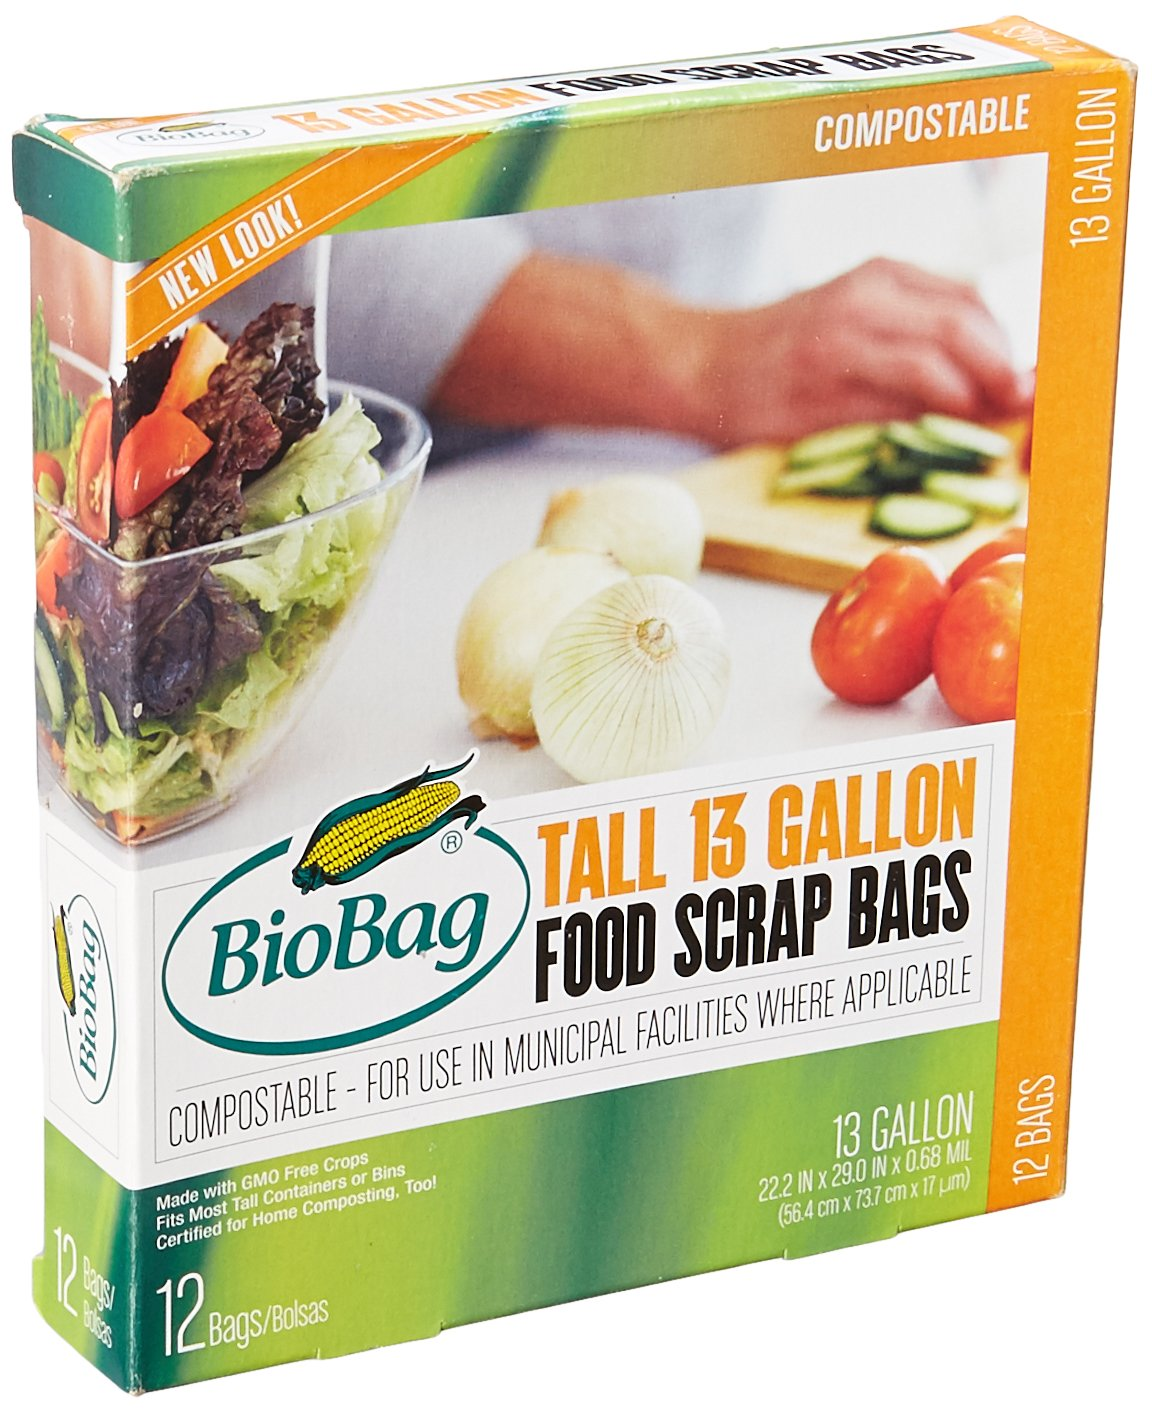 13 Gallon Tall Kitchen Bags (12 Count)